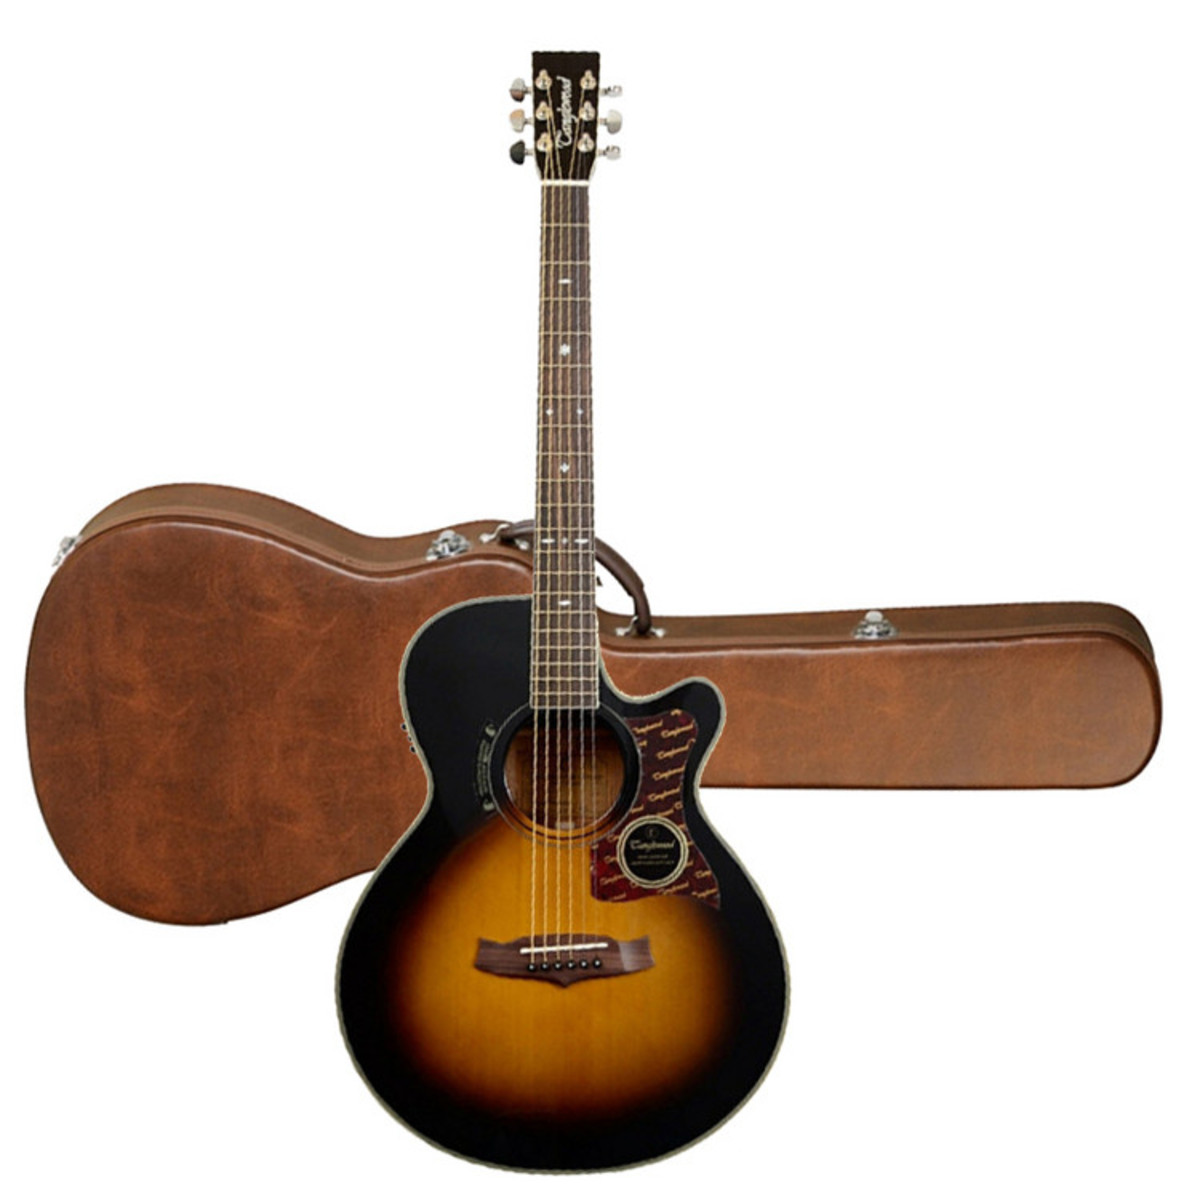 Disc tanglewood sundance anniversary electro acoustic vs for The tanglewood